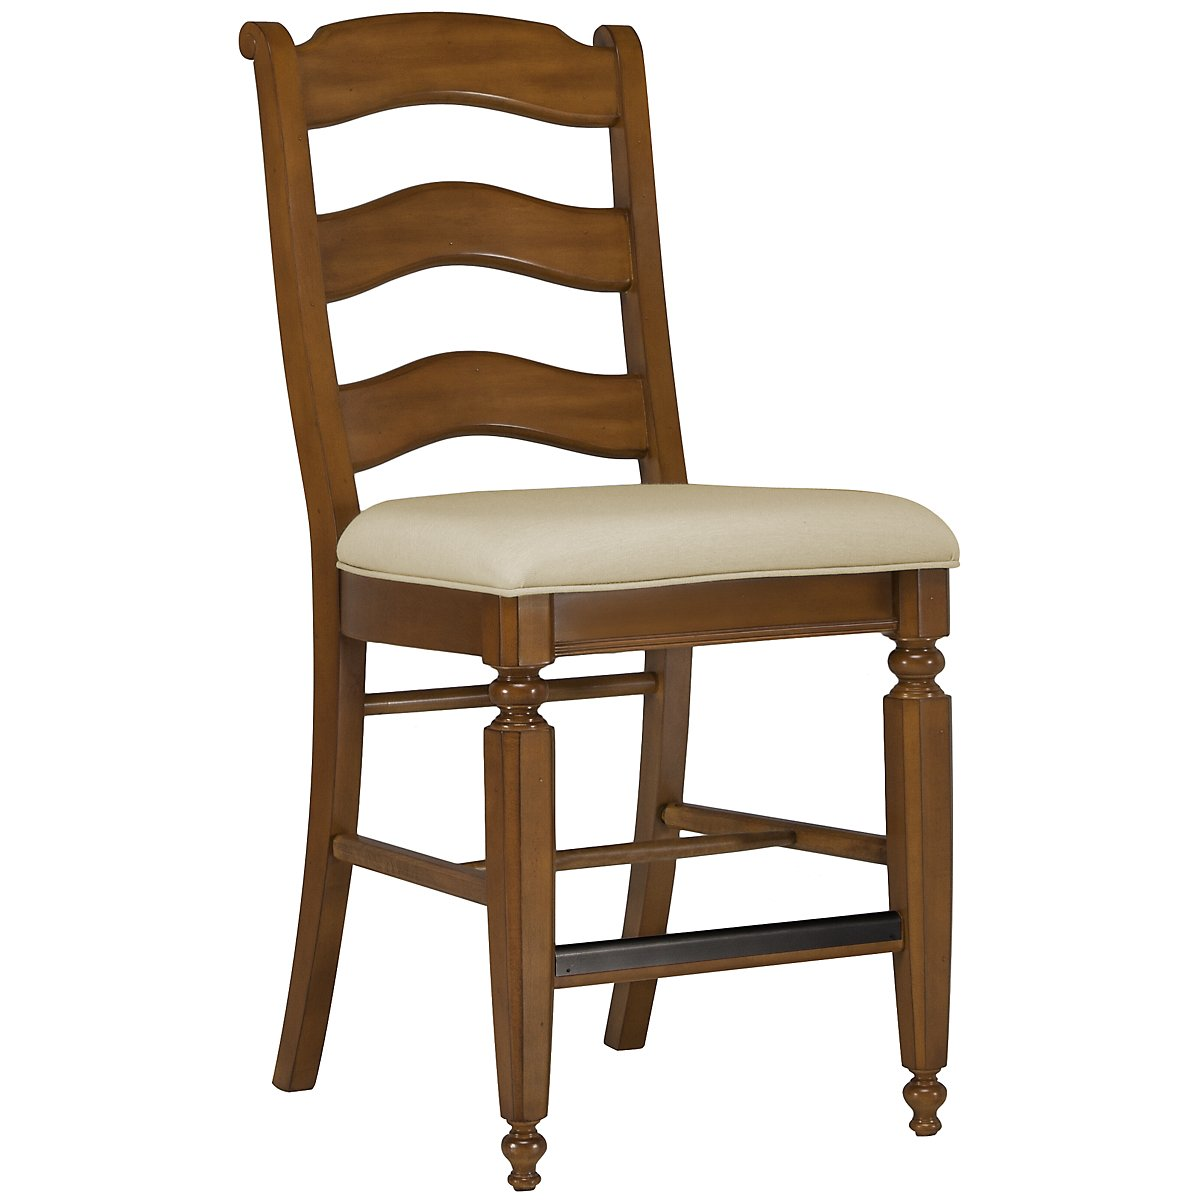 "Claire Mid Tone 24"" Wood Barstool"